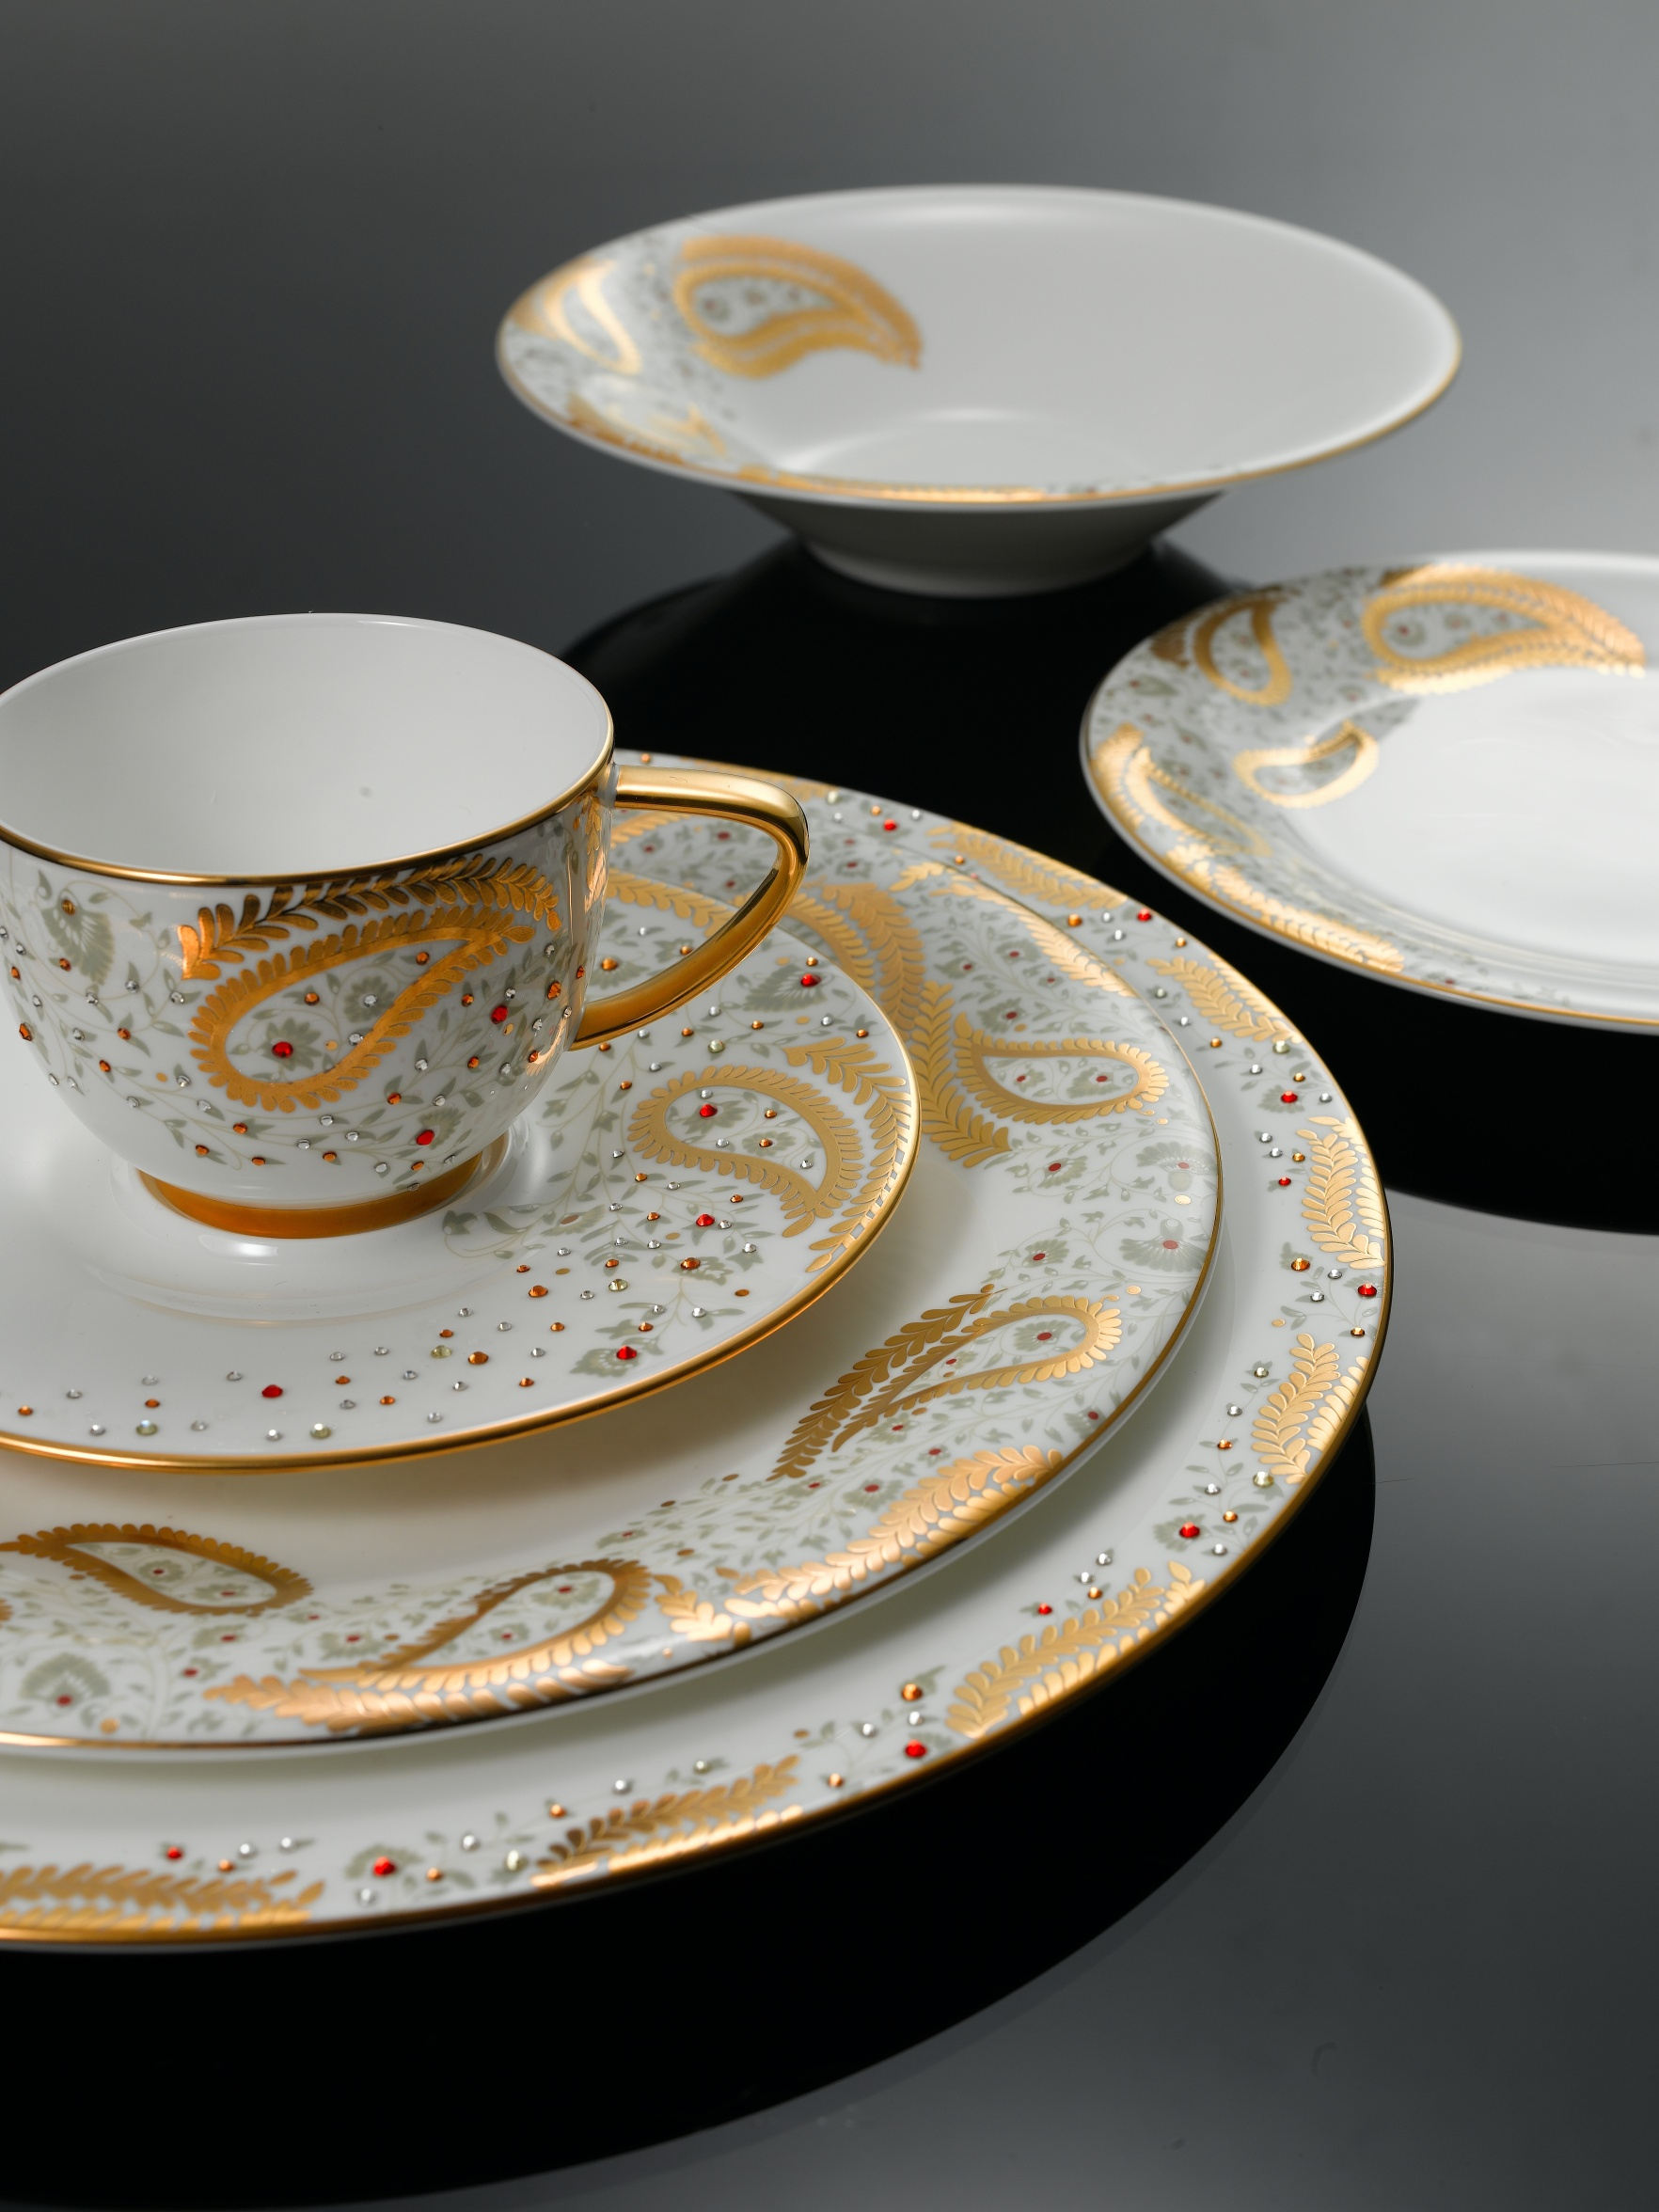 Realstate Decoration Attractive Looking Dinning With Beautiful Dinner Sets